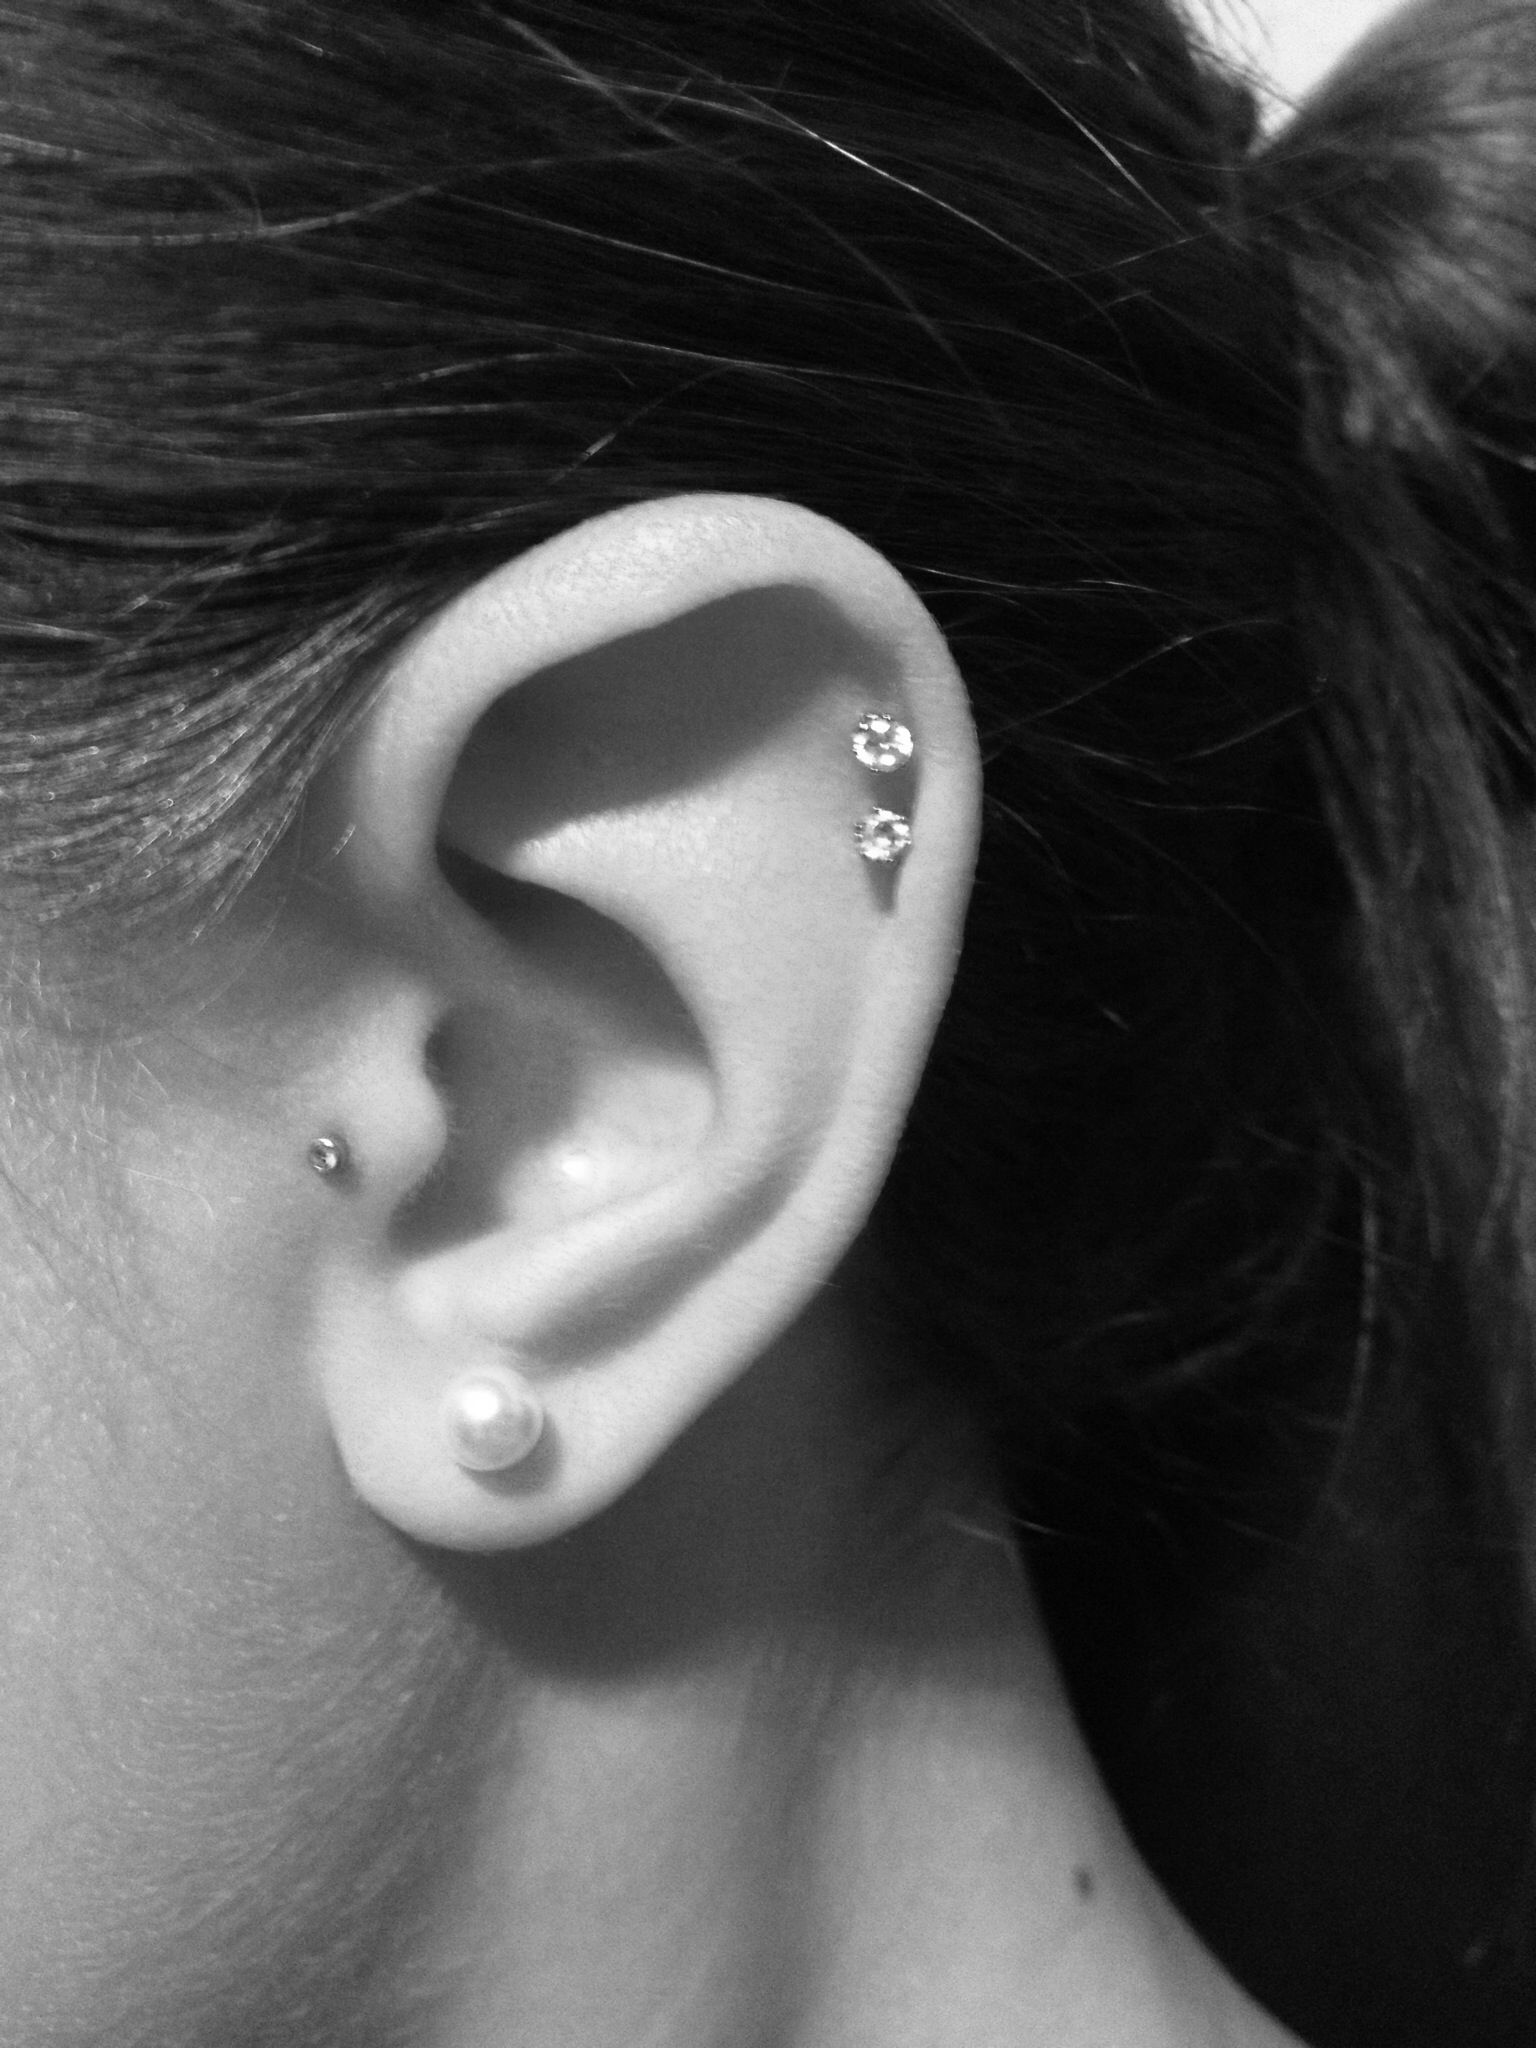 Double Cartilage Piercing Tragus Piercing